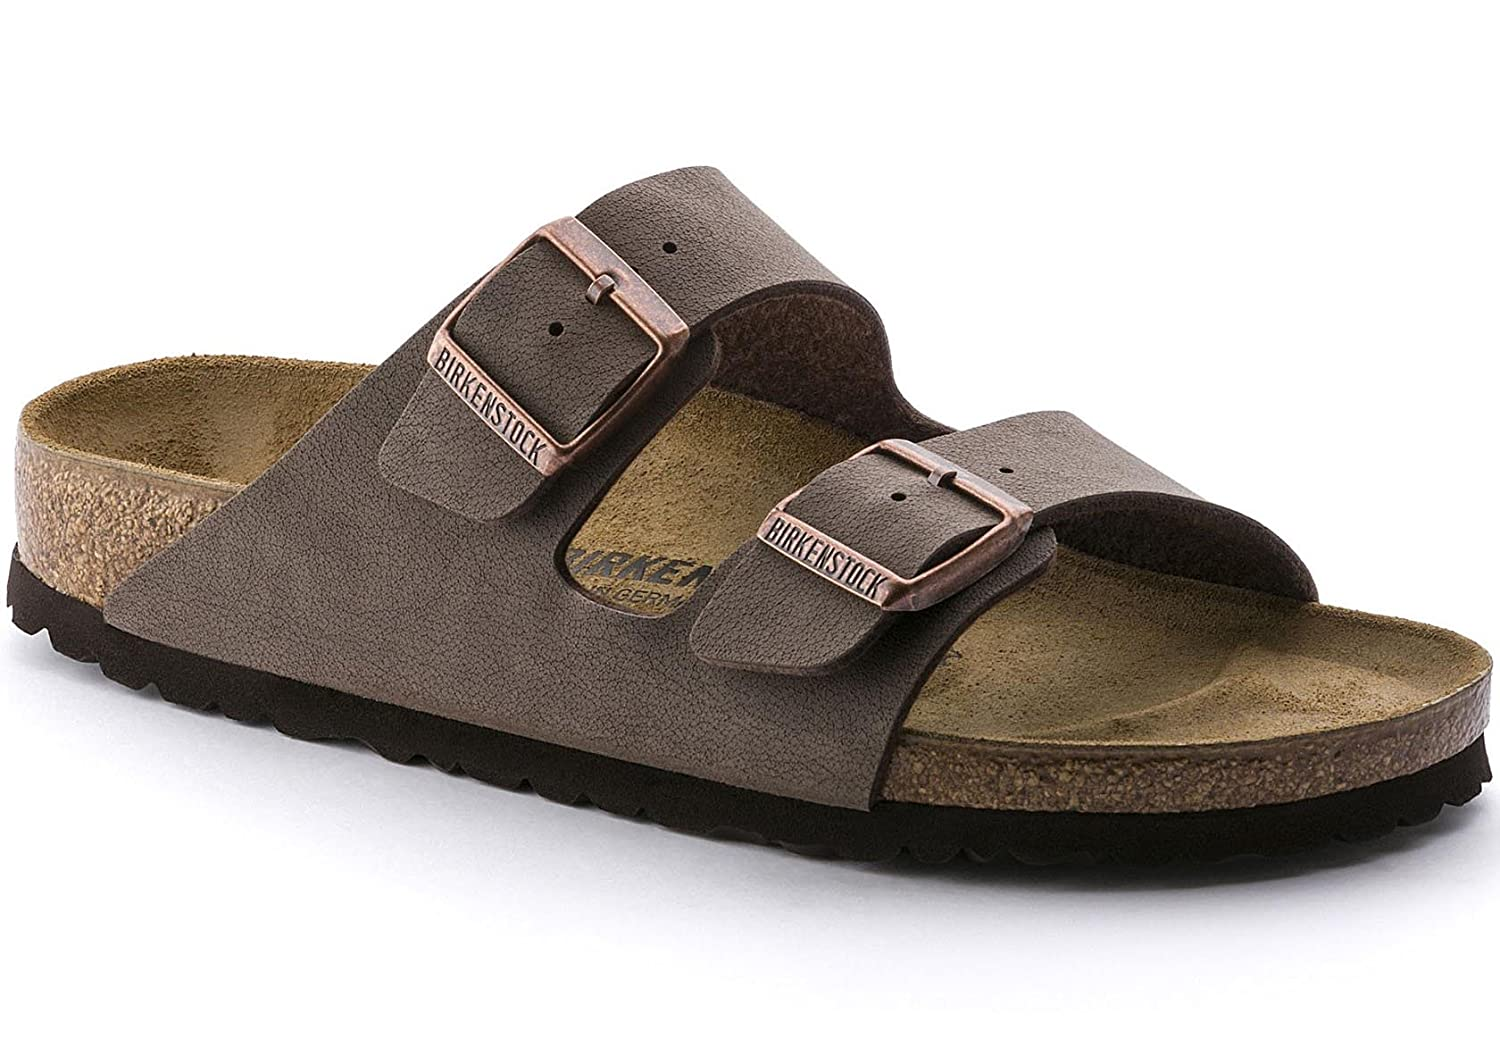 3a3e40129c9d Birkenstock Men s Arizona Birko-Flor Sandals